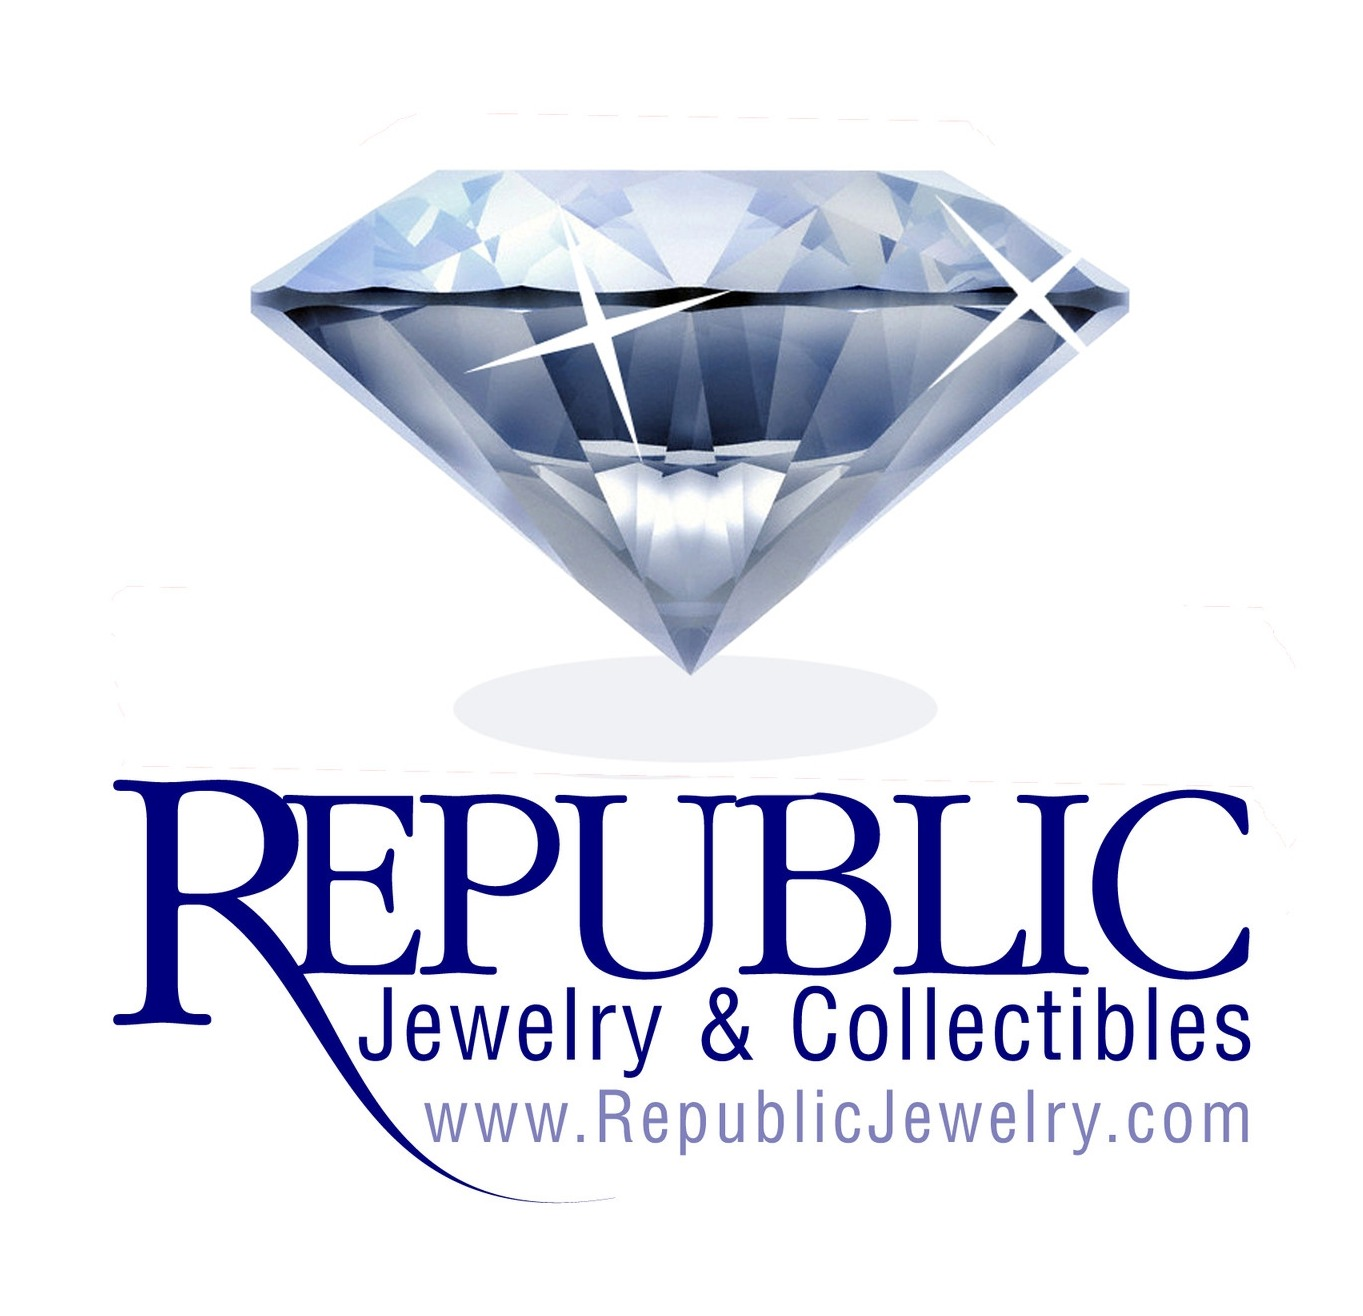 Republic Jewelry & Collectibles coupon code